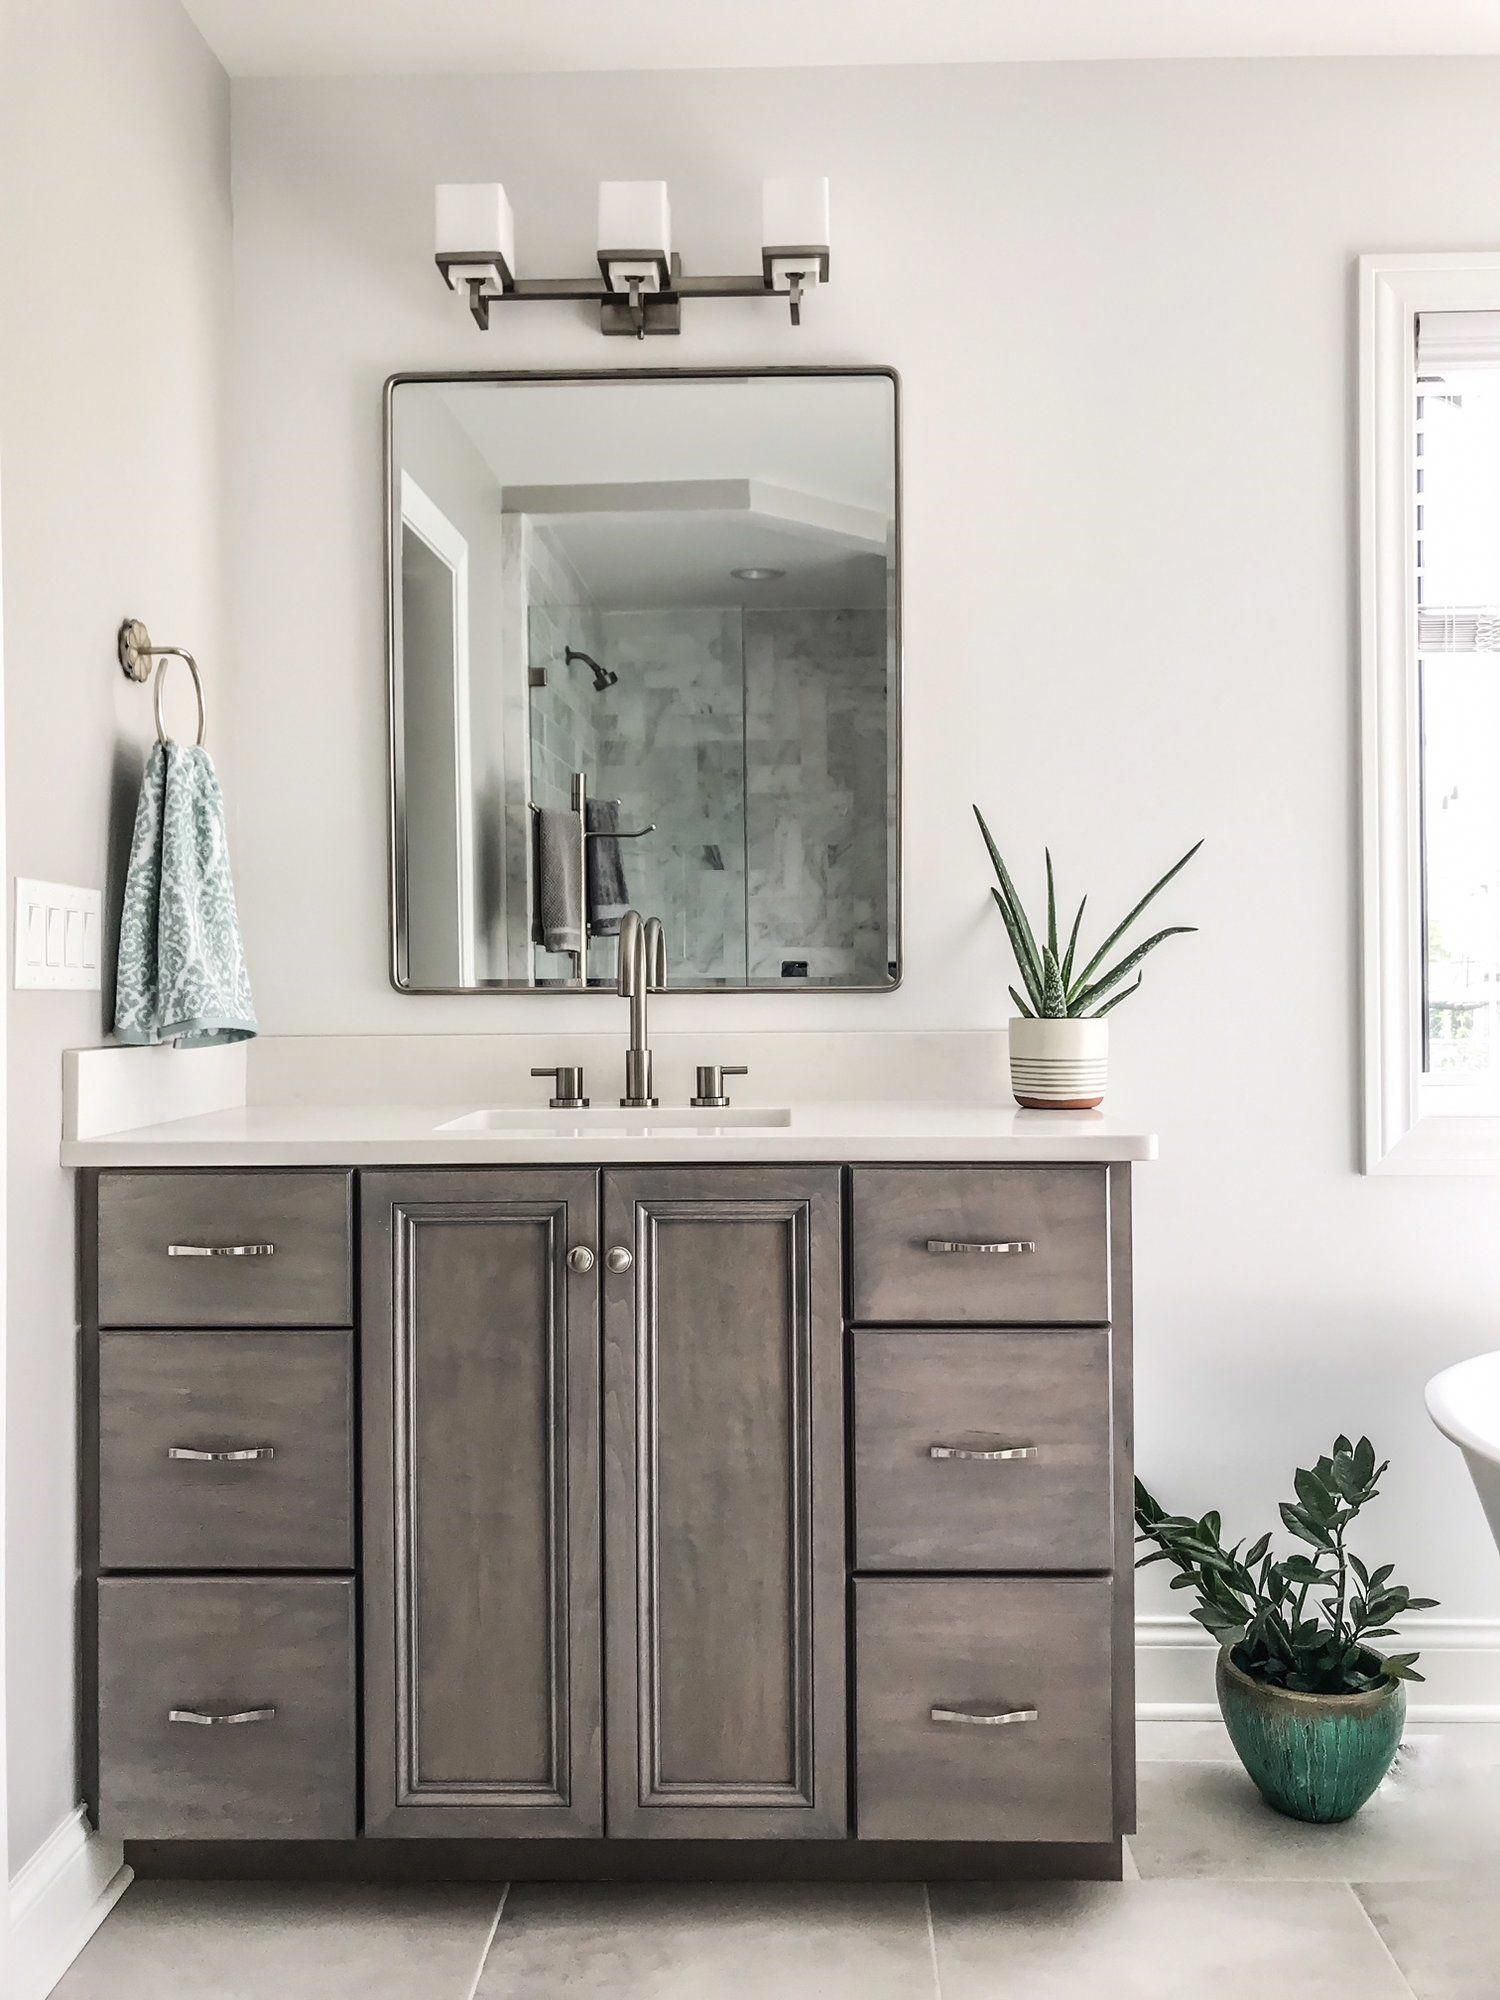 Grey Bathroom Vanity Gray Bathroom Decor Rectangle Rustic Bathroom Mirrors Modern Master B Gray Bathroom Decor Grey Bathroom Vanity Rustic Bathroom Vanities